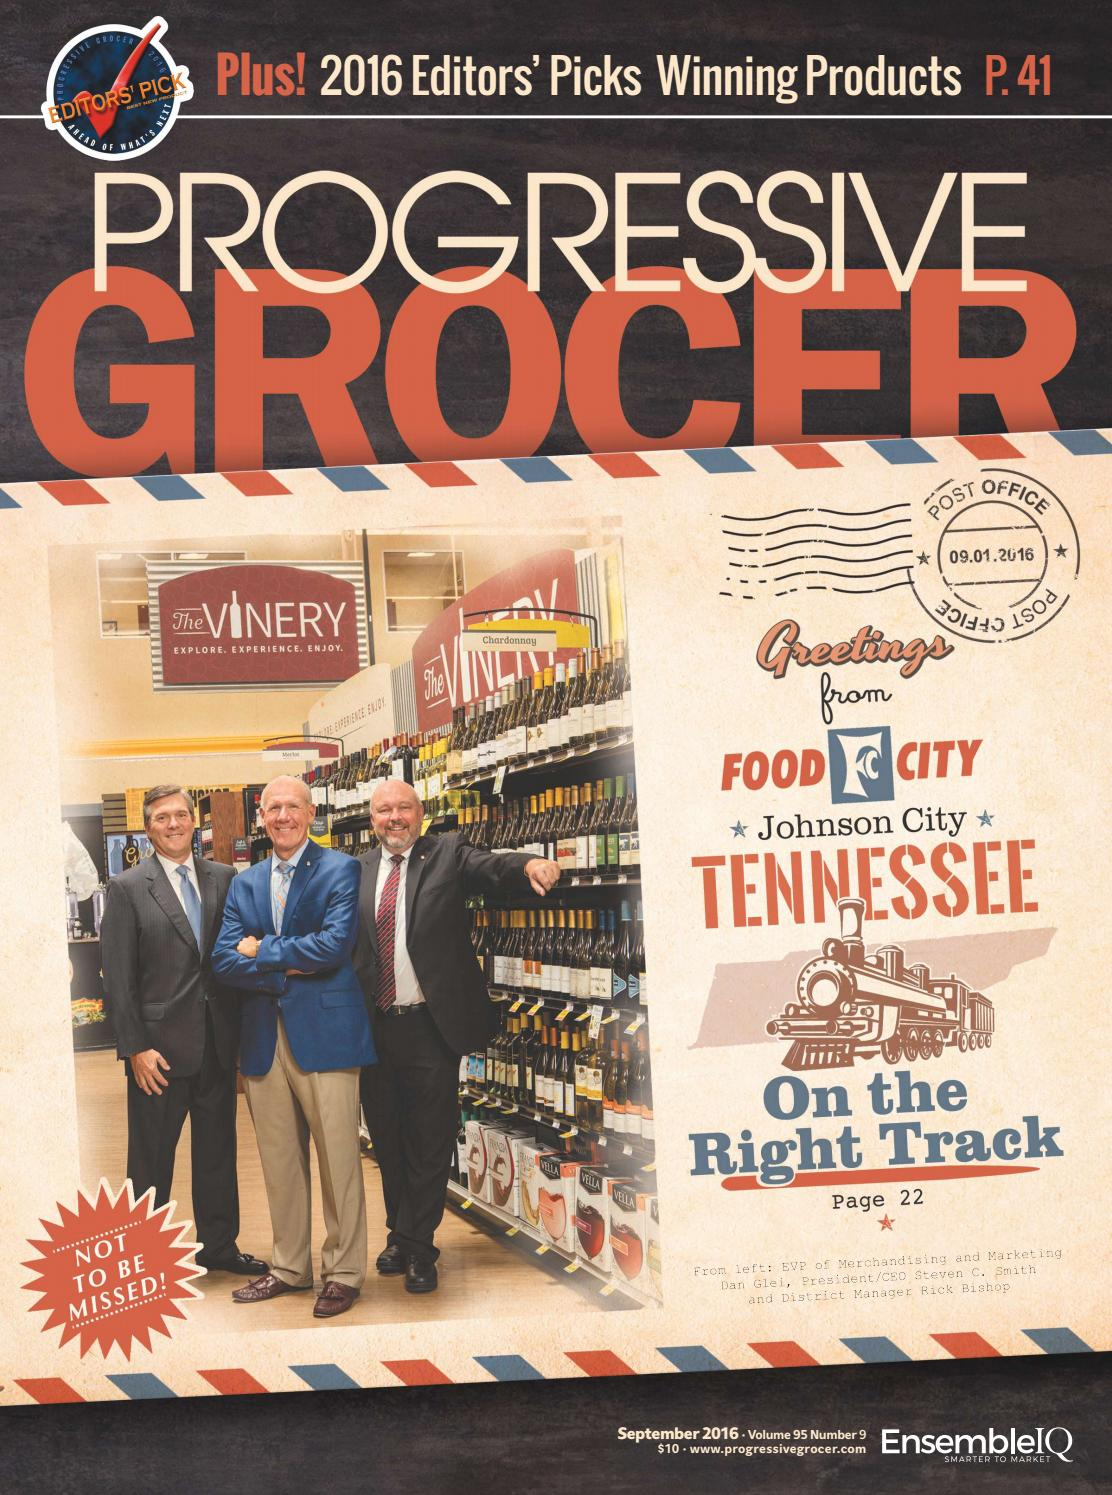 Progressive Grocer - September 2016 by ensembleiq - issuu